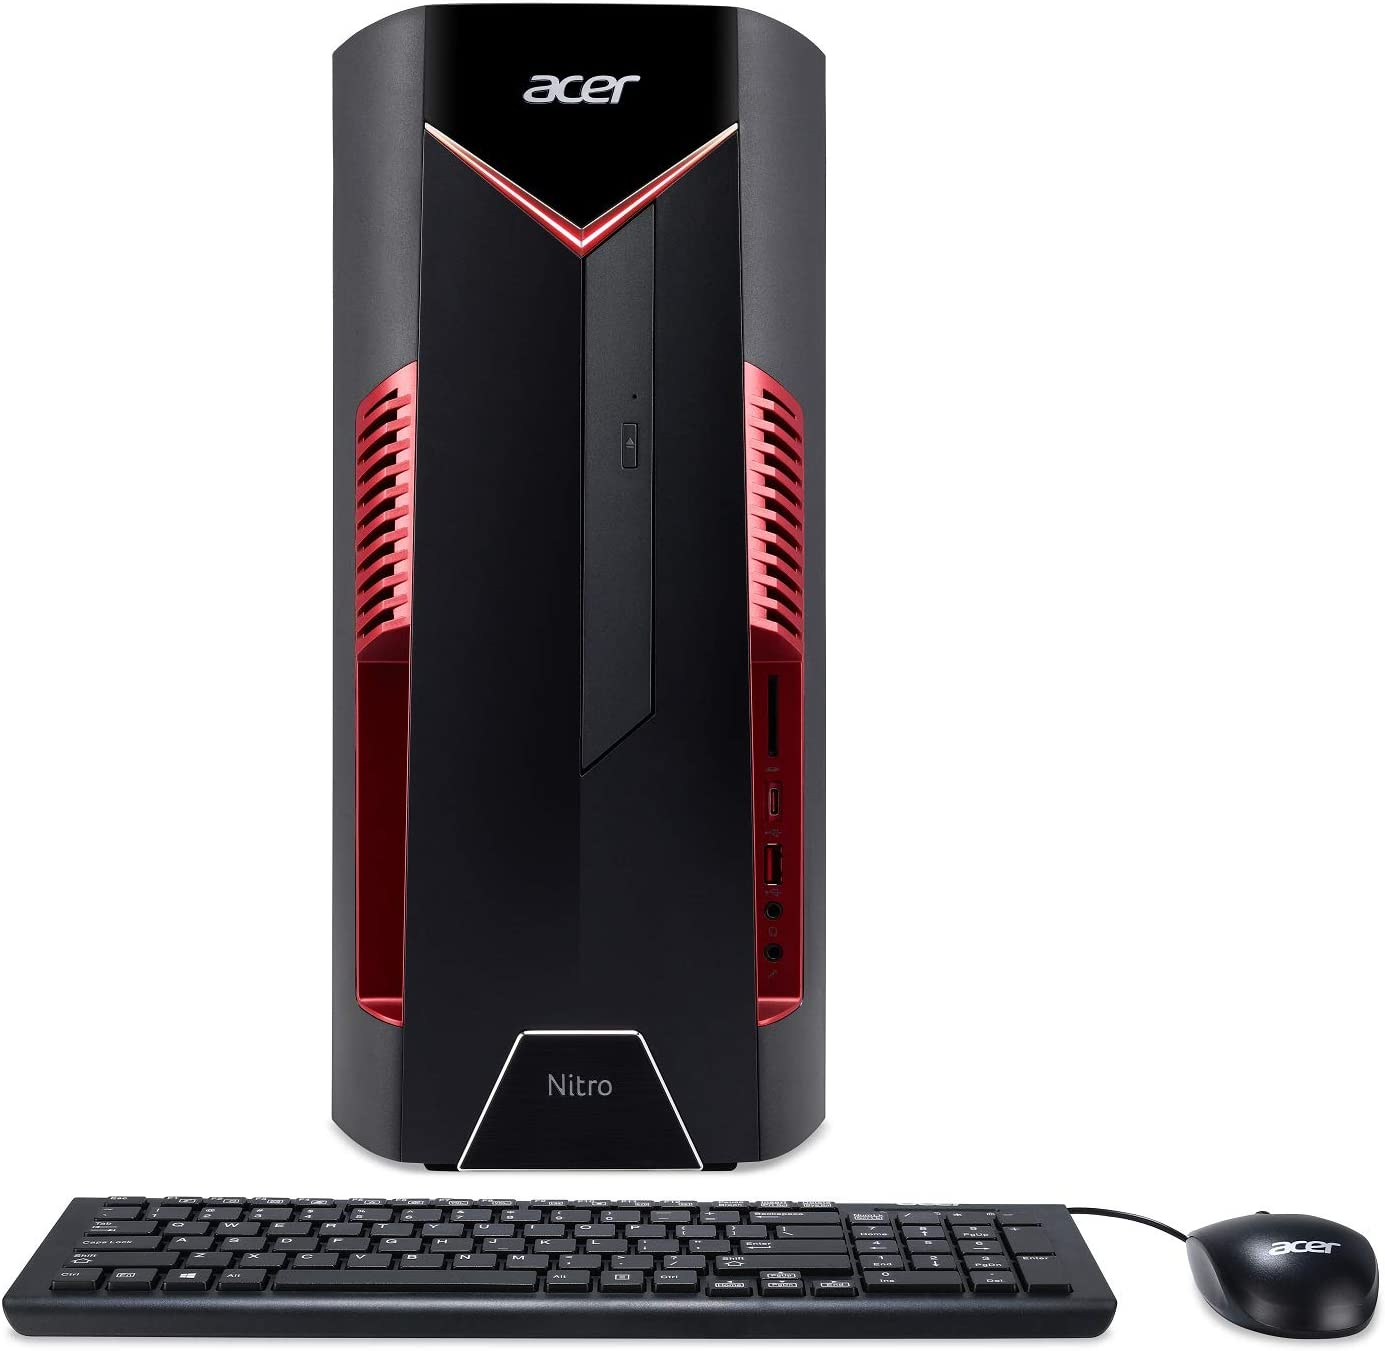 Acer Nitro 50 N50 600 Ur13 Desktop 8th Gen Intel Core I5 8400 Geforce Gtx 1060 Graphics 8gb Ddr4 256gb Ssd Windows 10 Home Computers Accessories